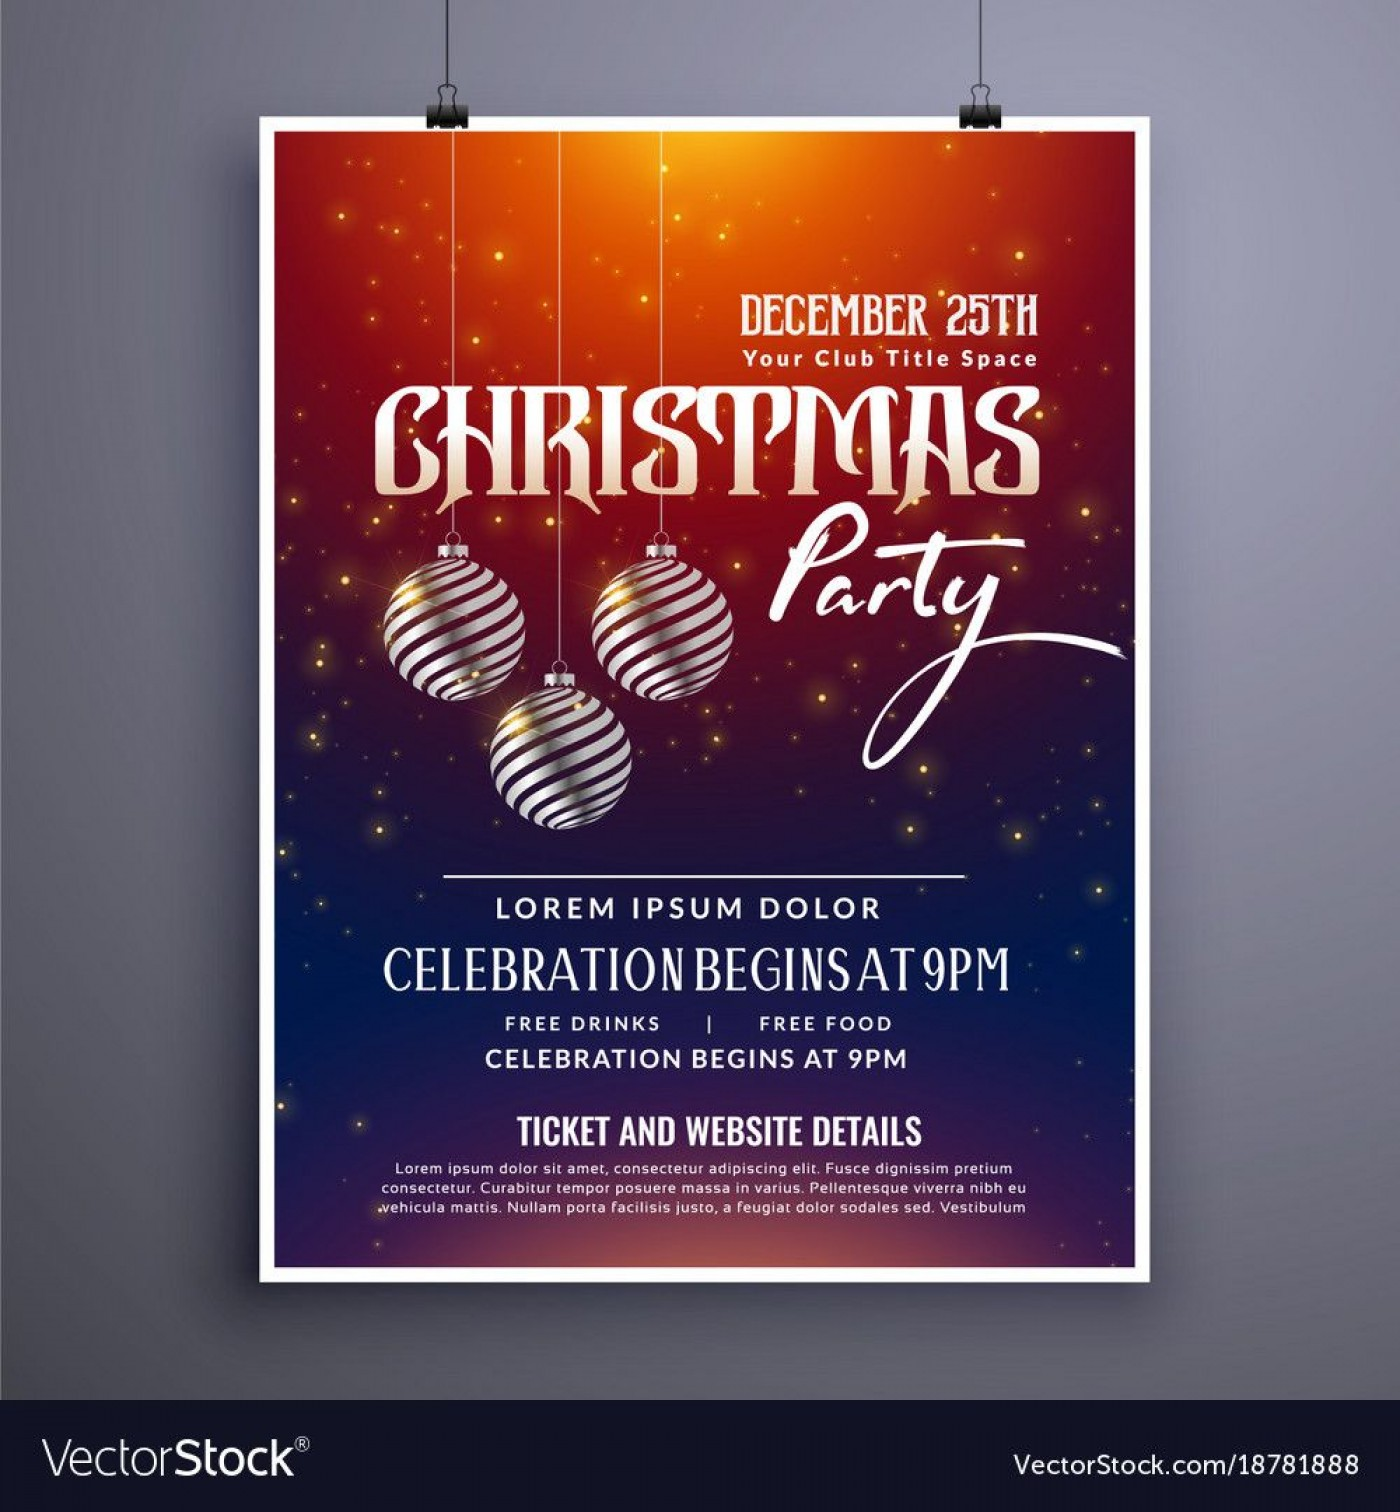 003 Remarkable Holiday Party Invitation Template Free Photo  Elegant Christma Download Dinner Printable Australia1400